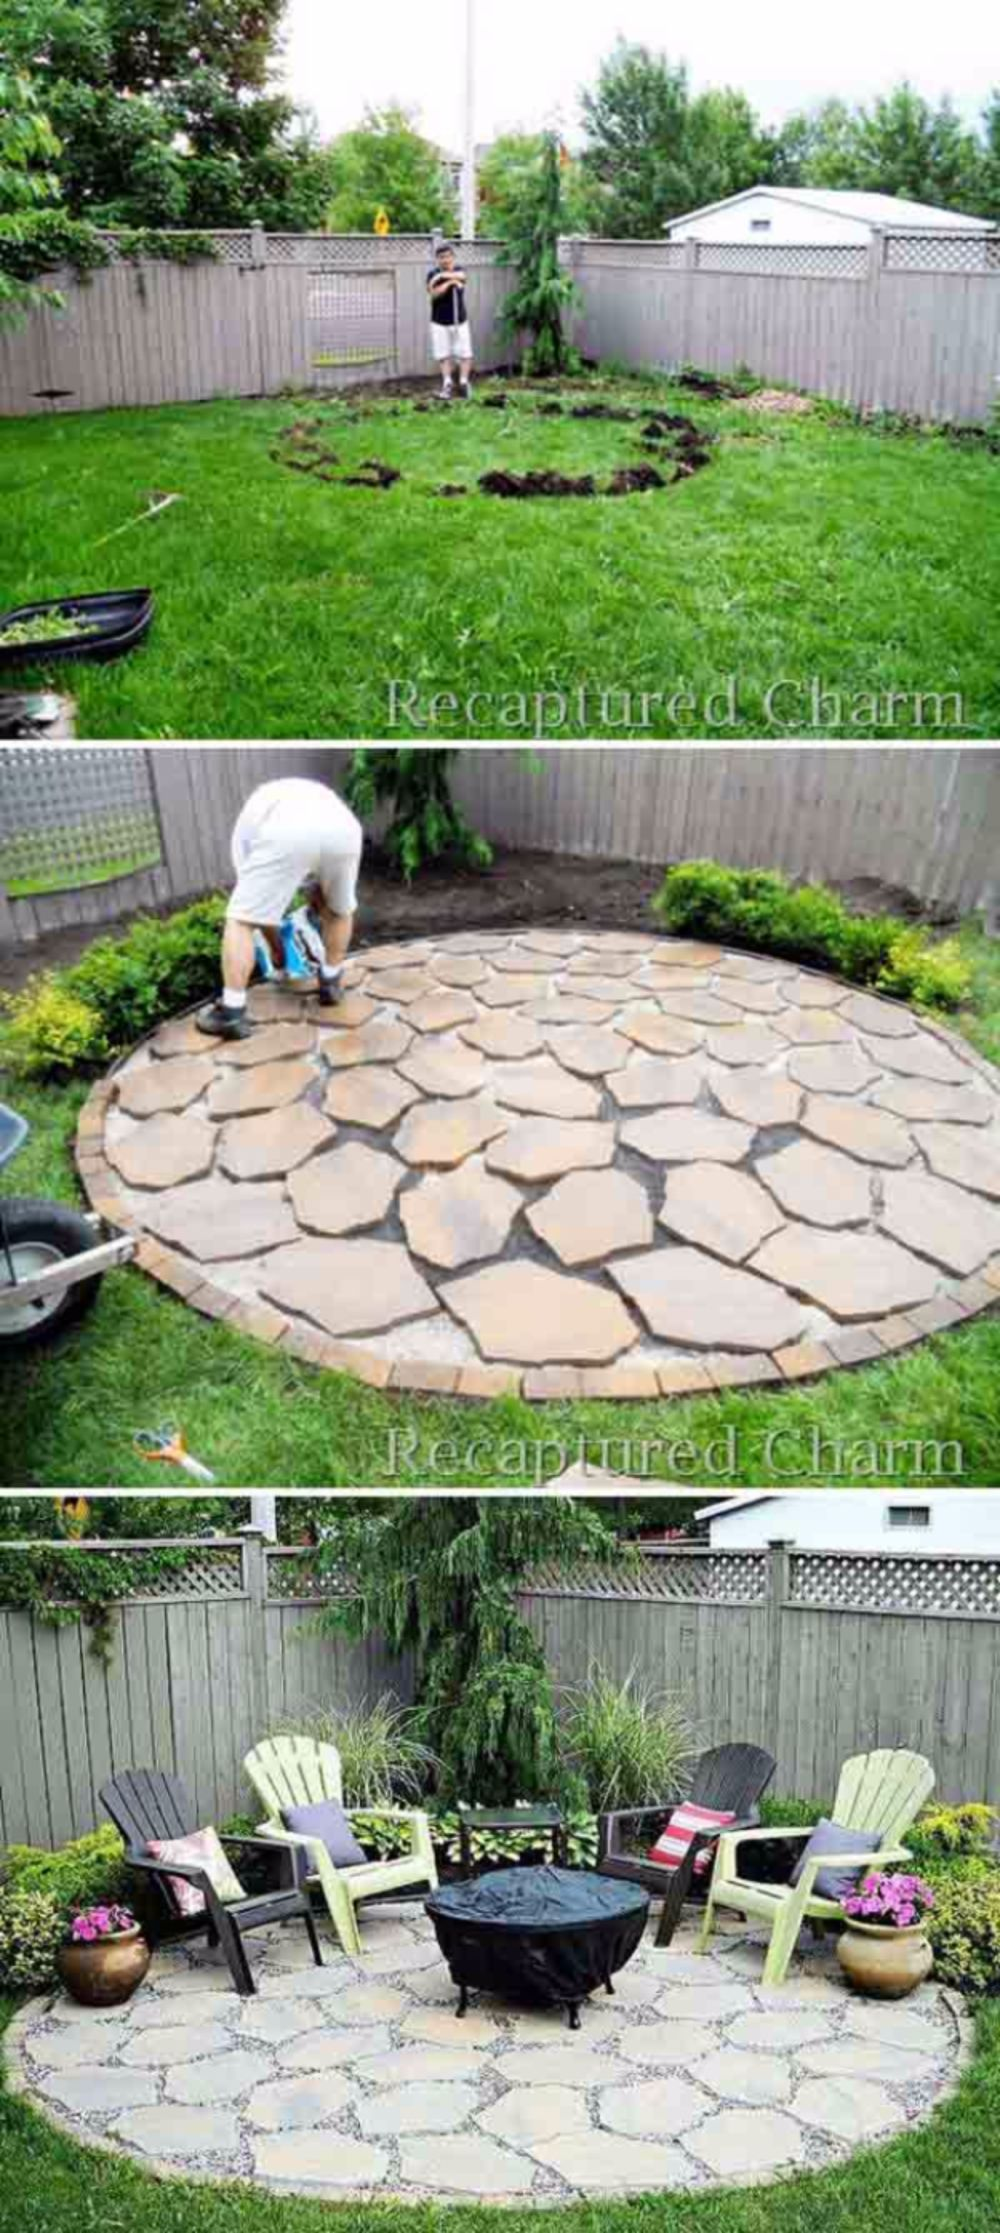 Awesome 30 diy patio ideas on a budget https wartaku net 2017 05 27 30 diy patio ideas budget